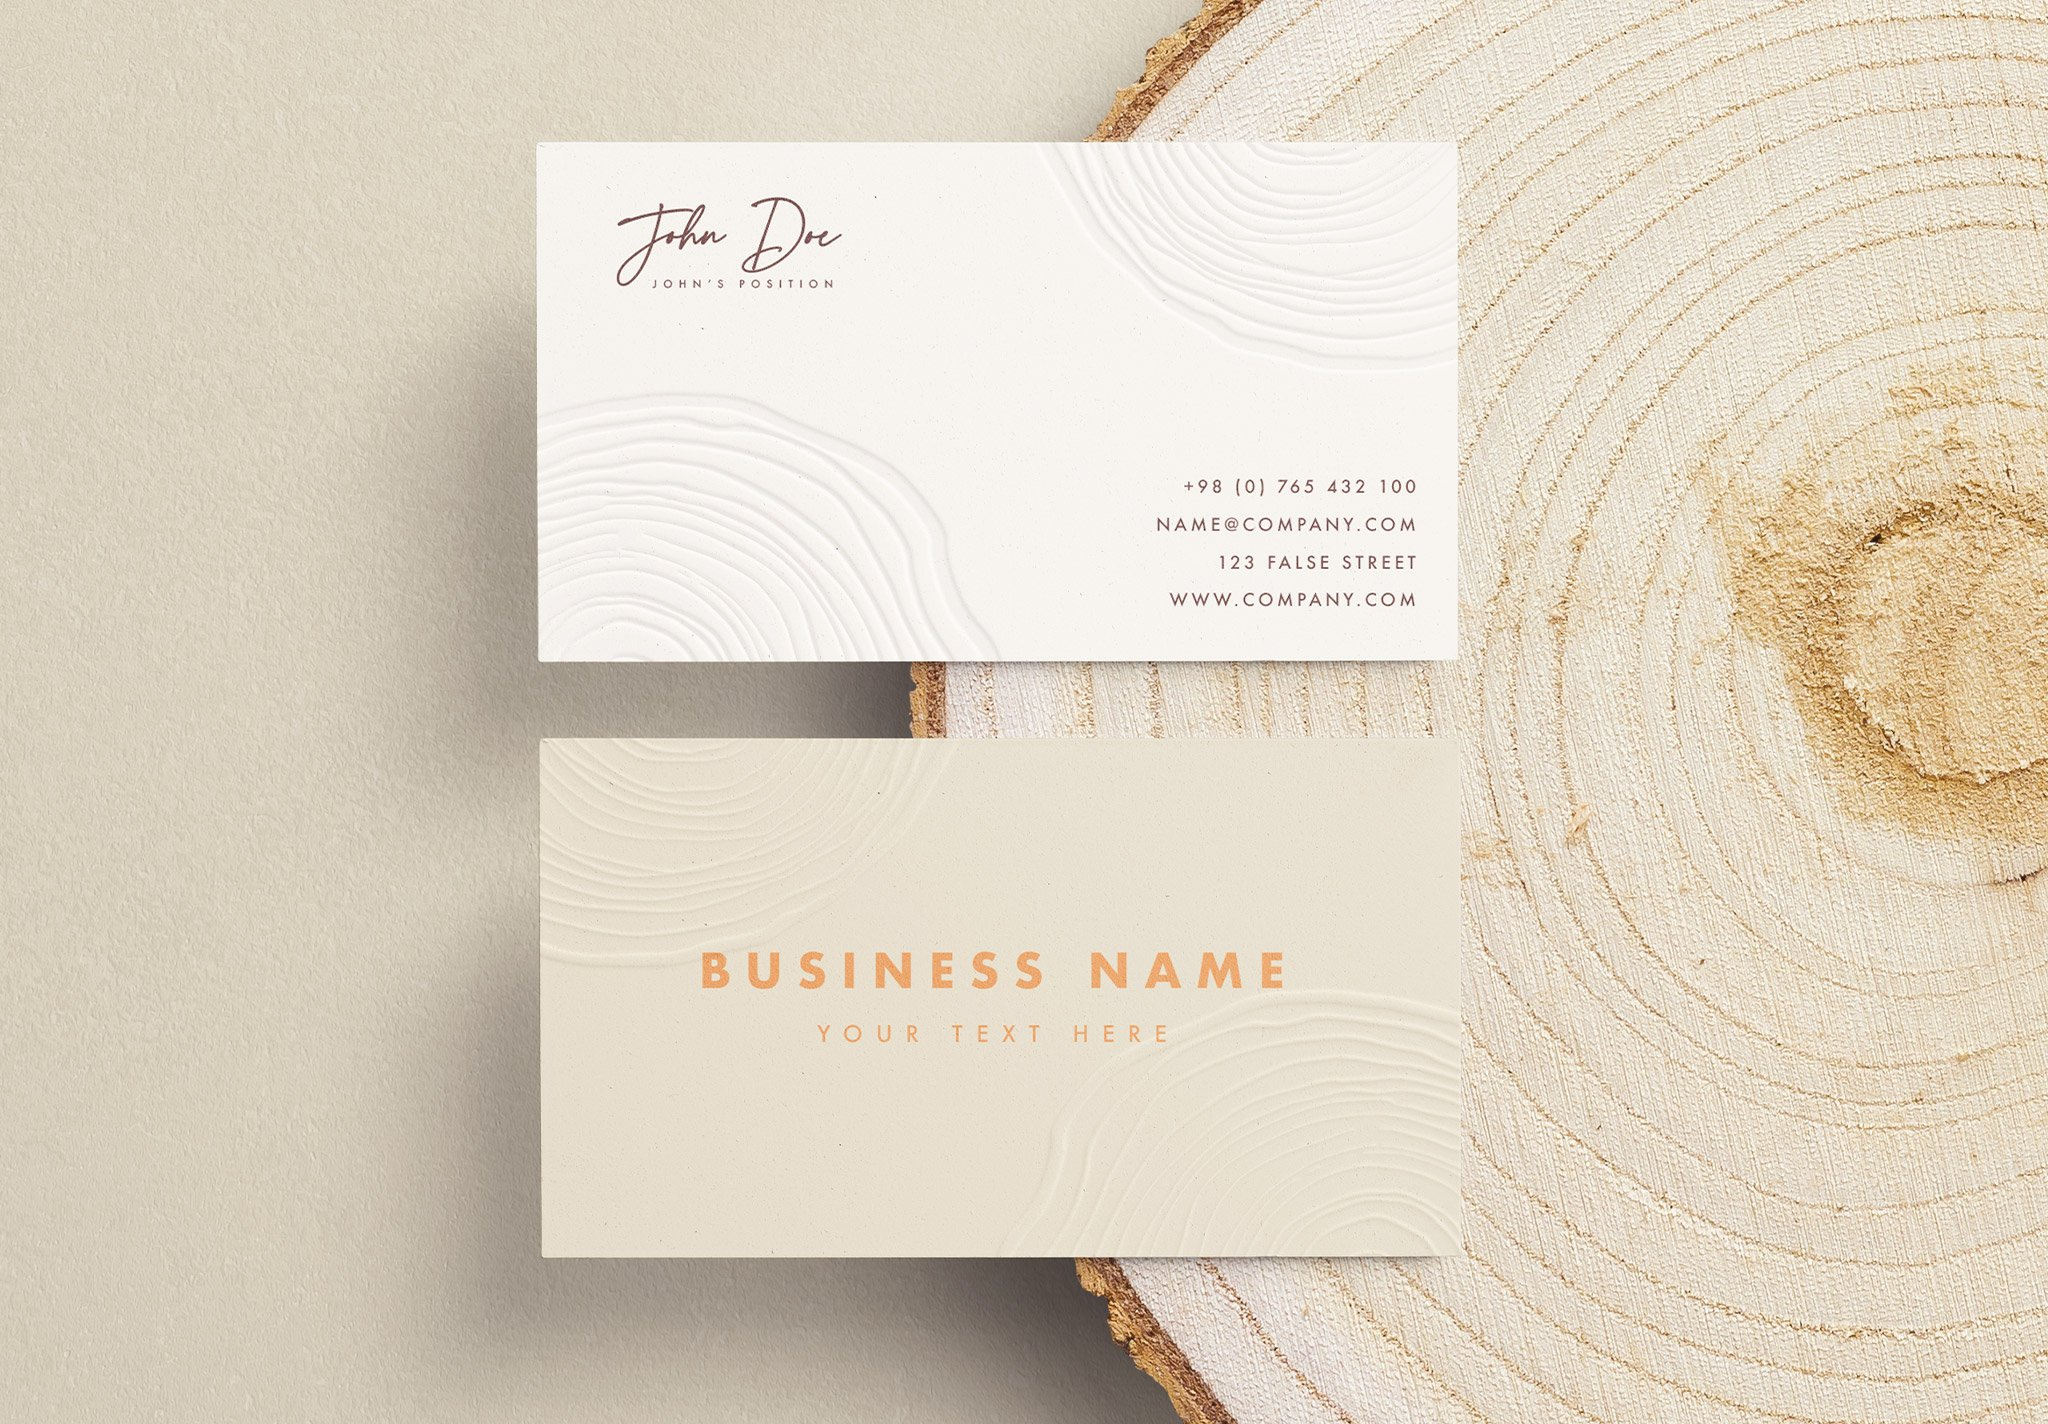 business cards layout 4 image03